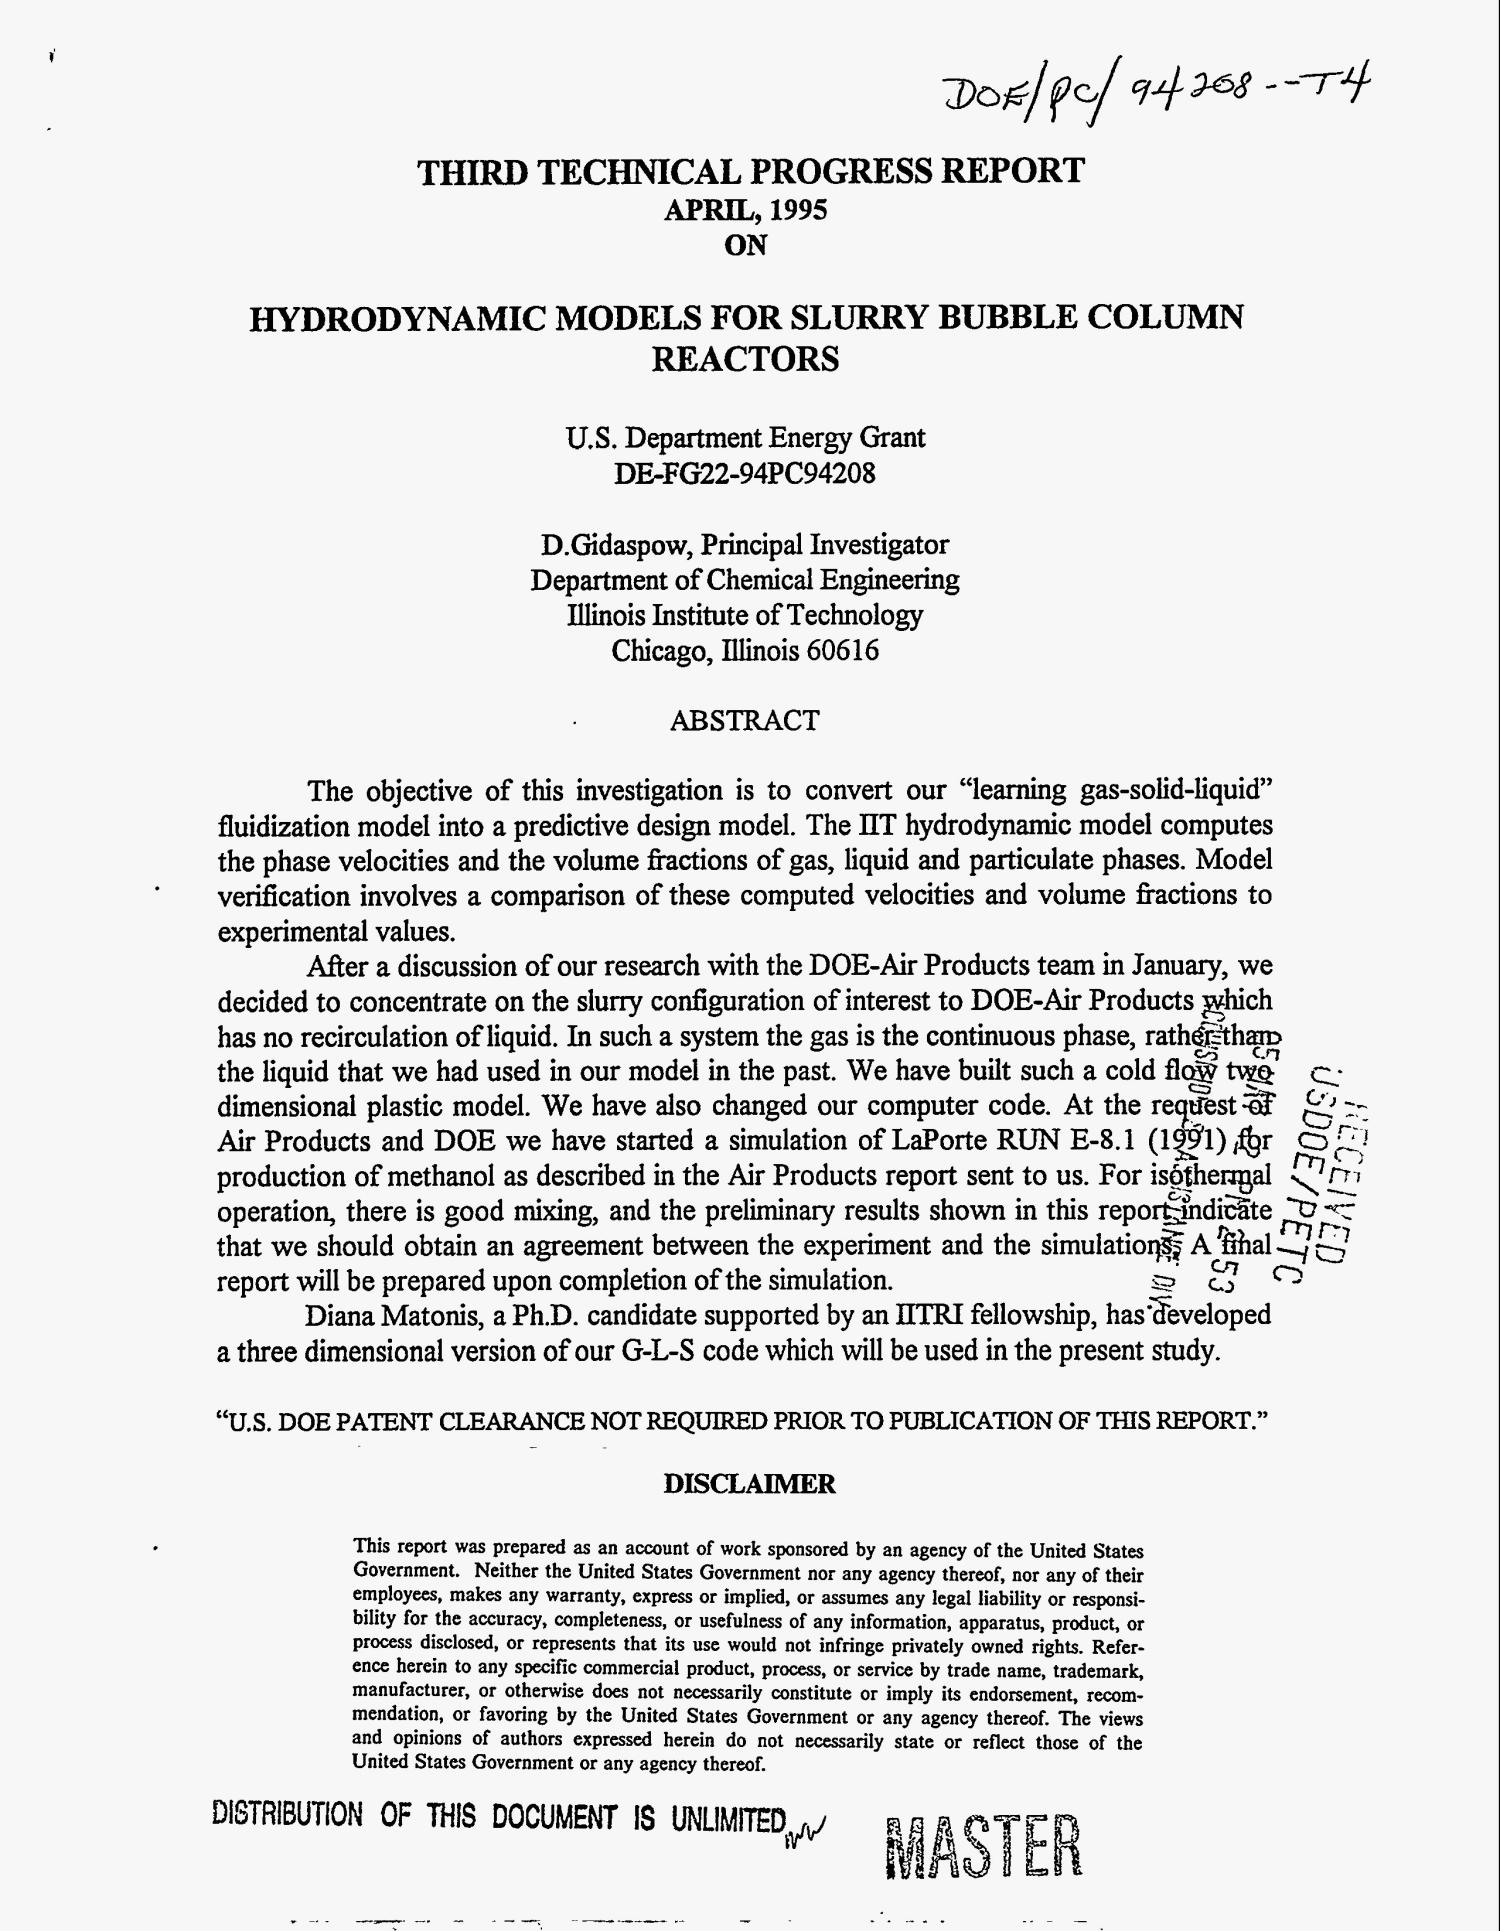 Hydrodynamic models for slurry bubble column reactors. Third technical progress report, January 1995--March 1995                                                                                                      [Sequence #]: 1 of 20